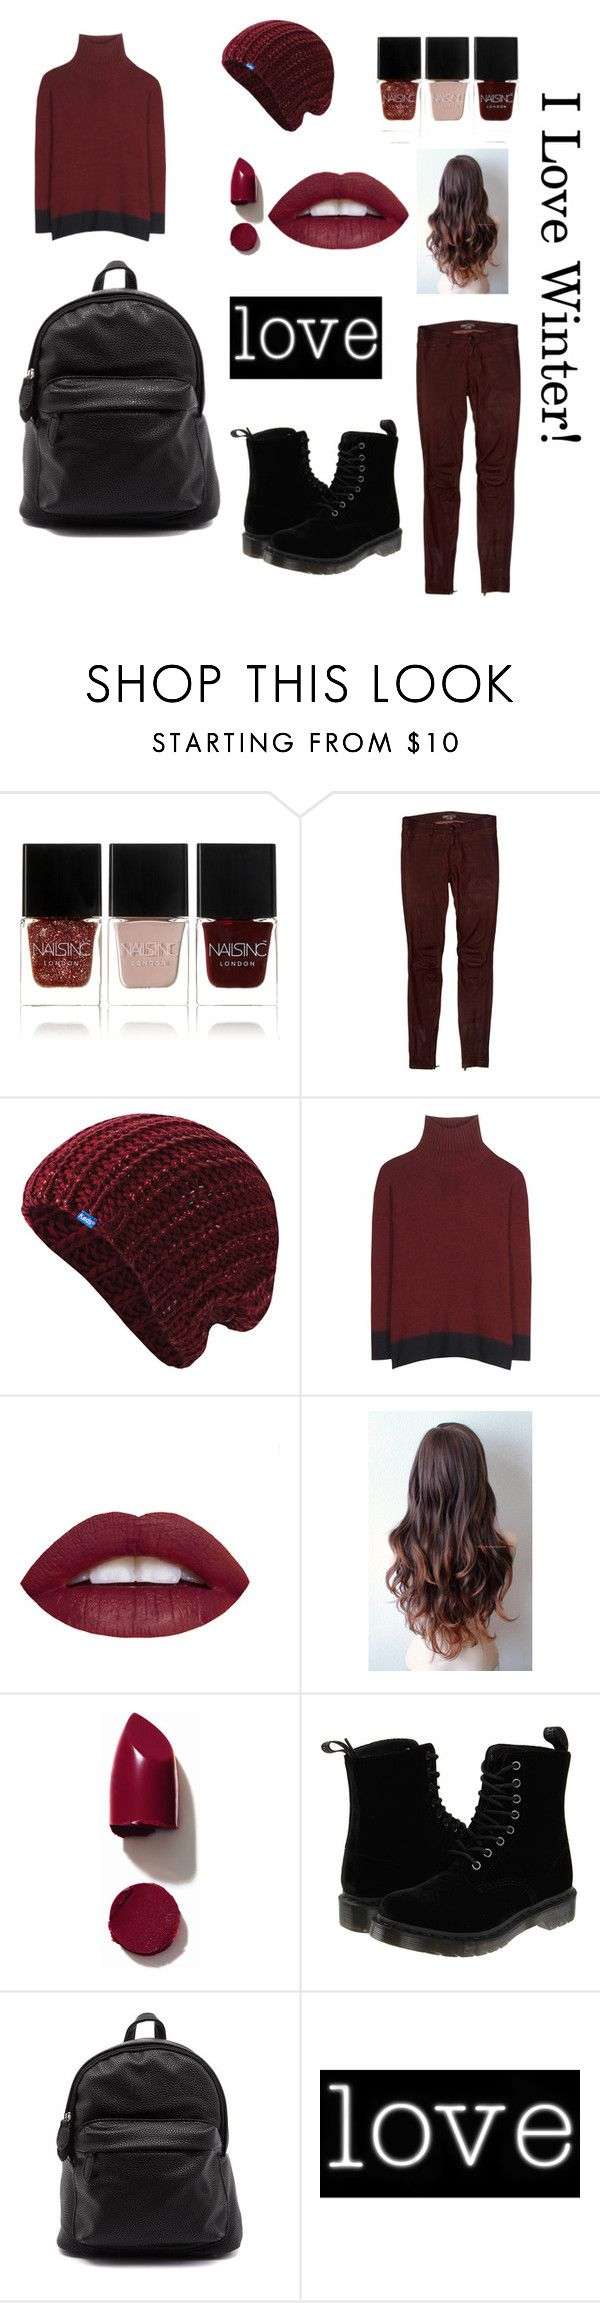 """Winter"" by kiajeje ❤ liked on Polyvore featuring Nails Inc., Vince, Keds, Marni, NARS Cosmetics, Dr. Martens, Seletti, red and winterstyle"